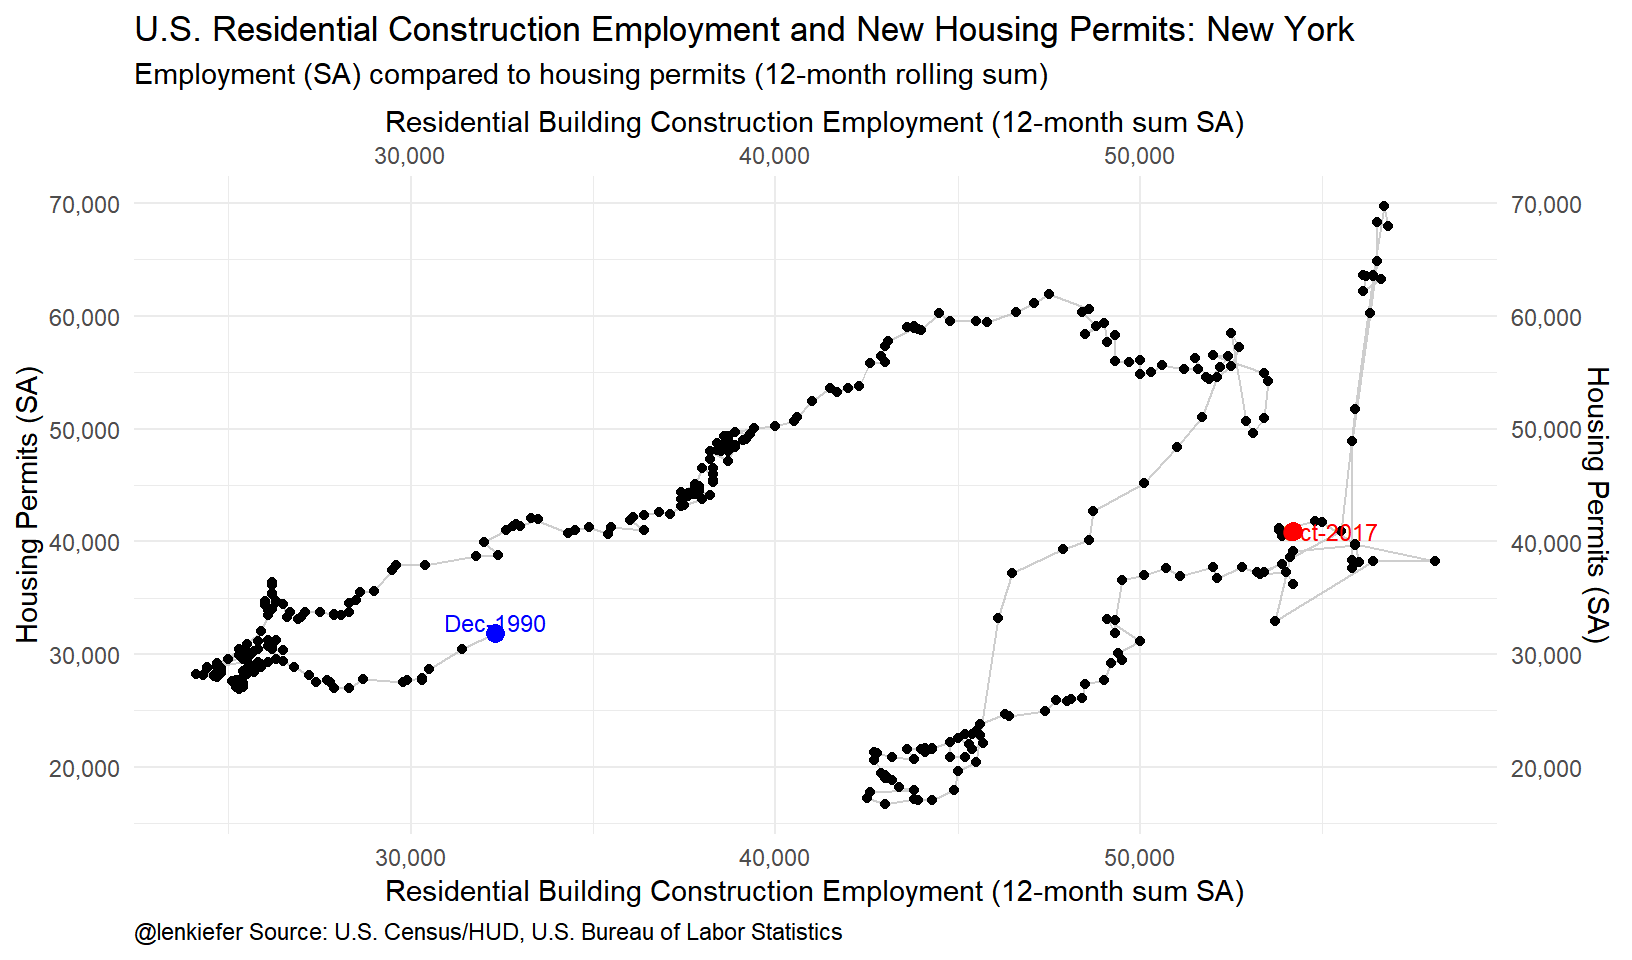 Housing construction and employment trends len kiefer ggplotdatadfwa aesxcons1000 ypermits labelasaracterdateformatb y geompathcolorgrayalpha075 geompoint buycottarizona